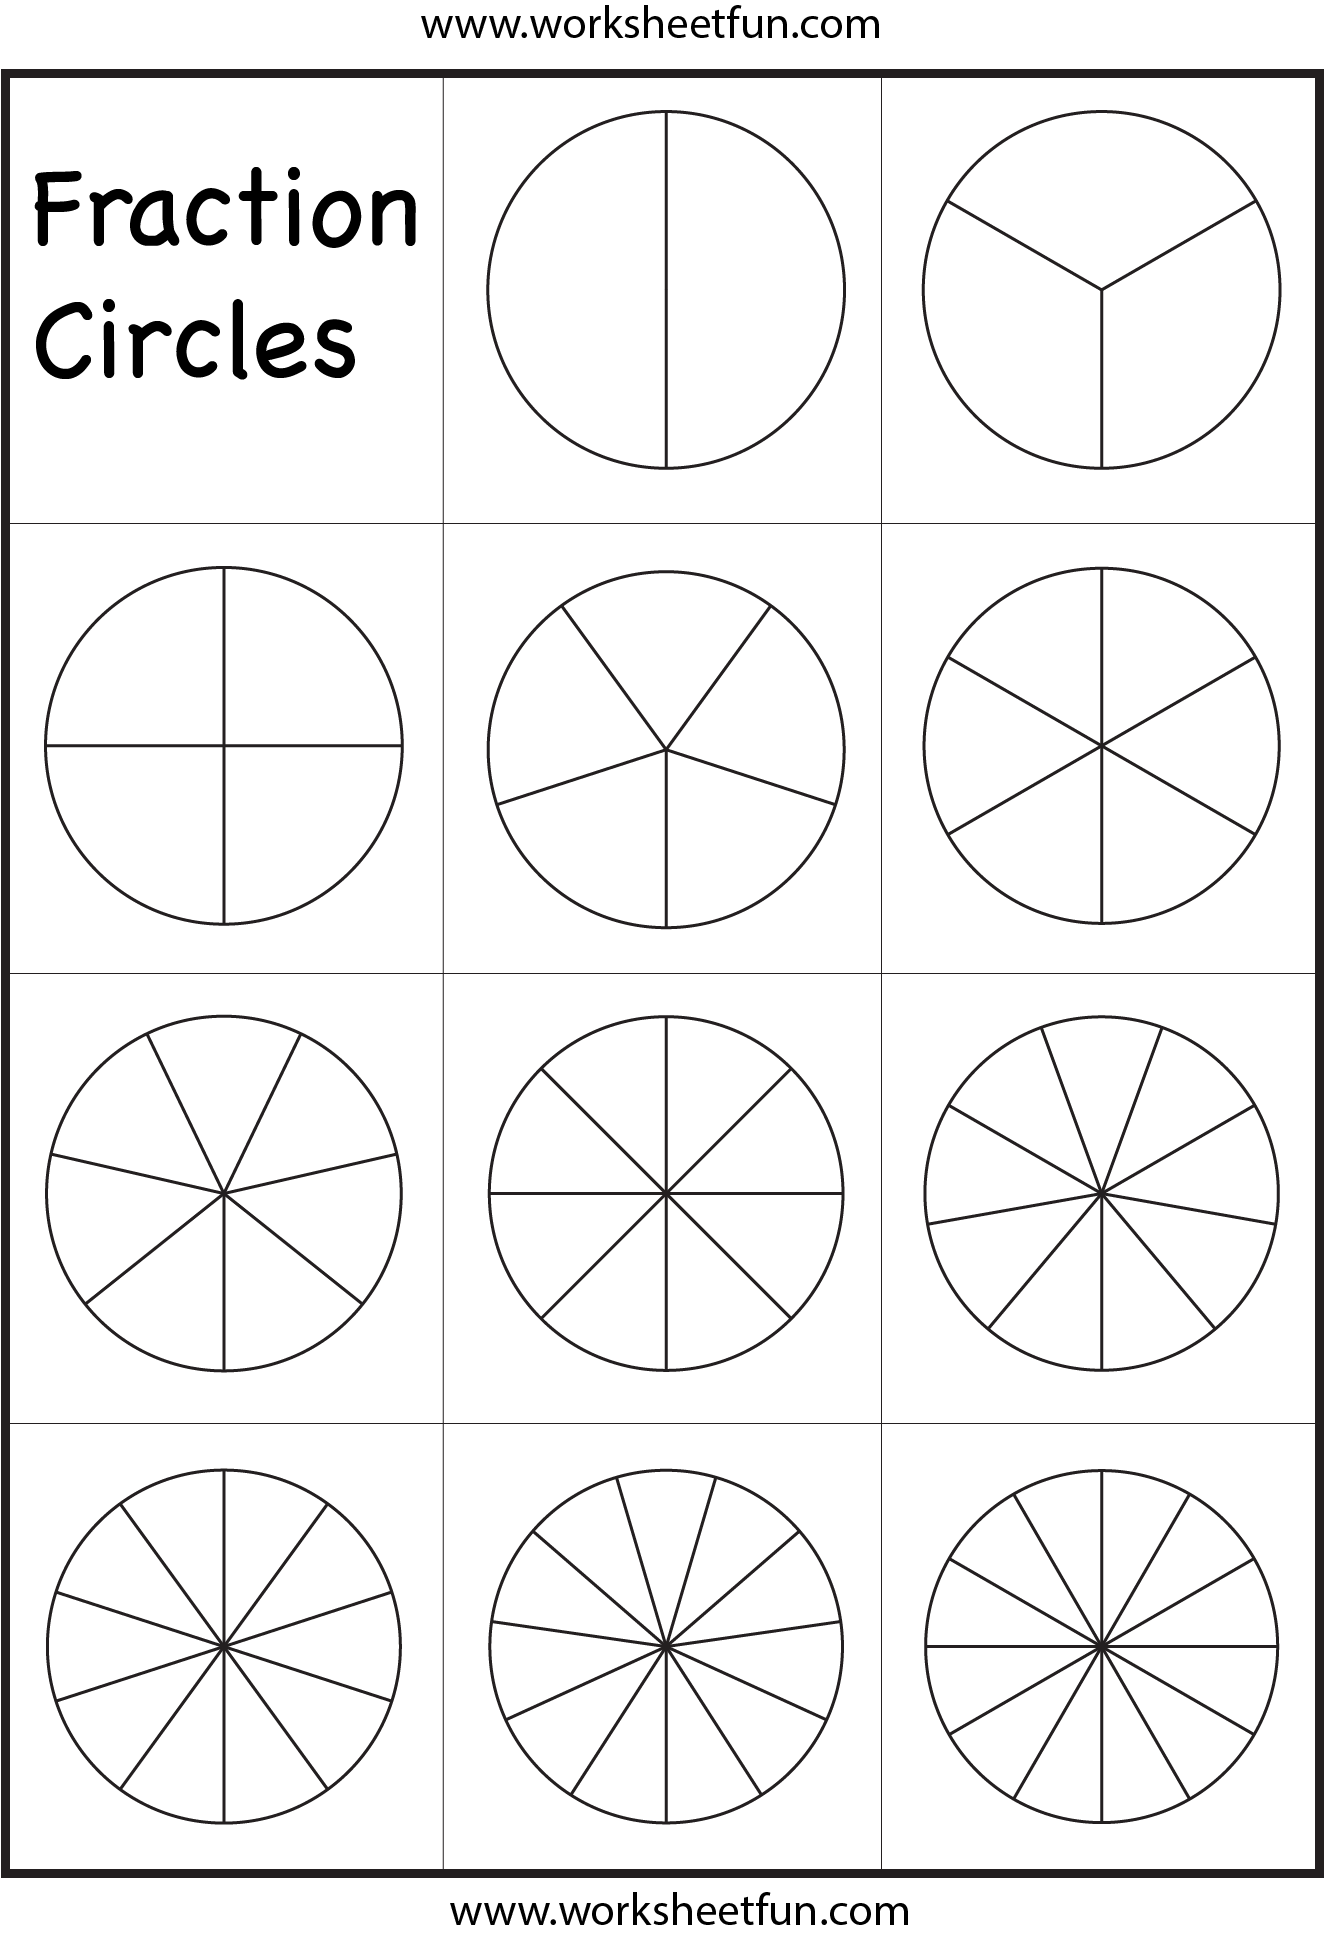 New 554 Fraction Circles Worksheet